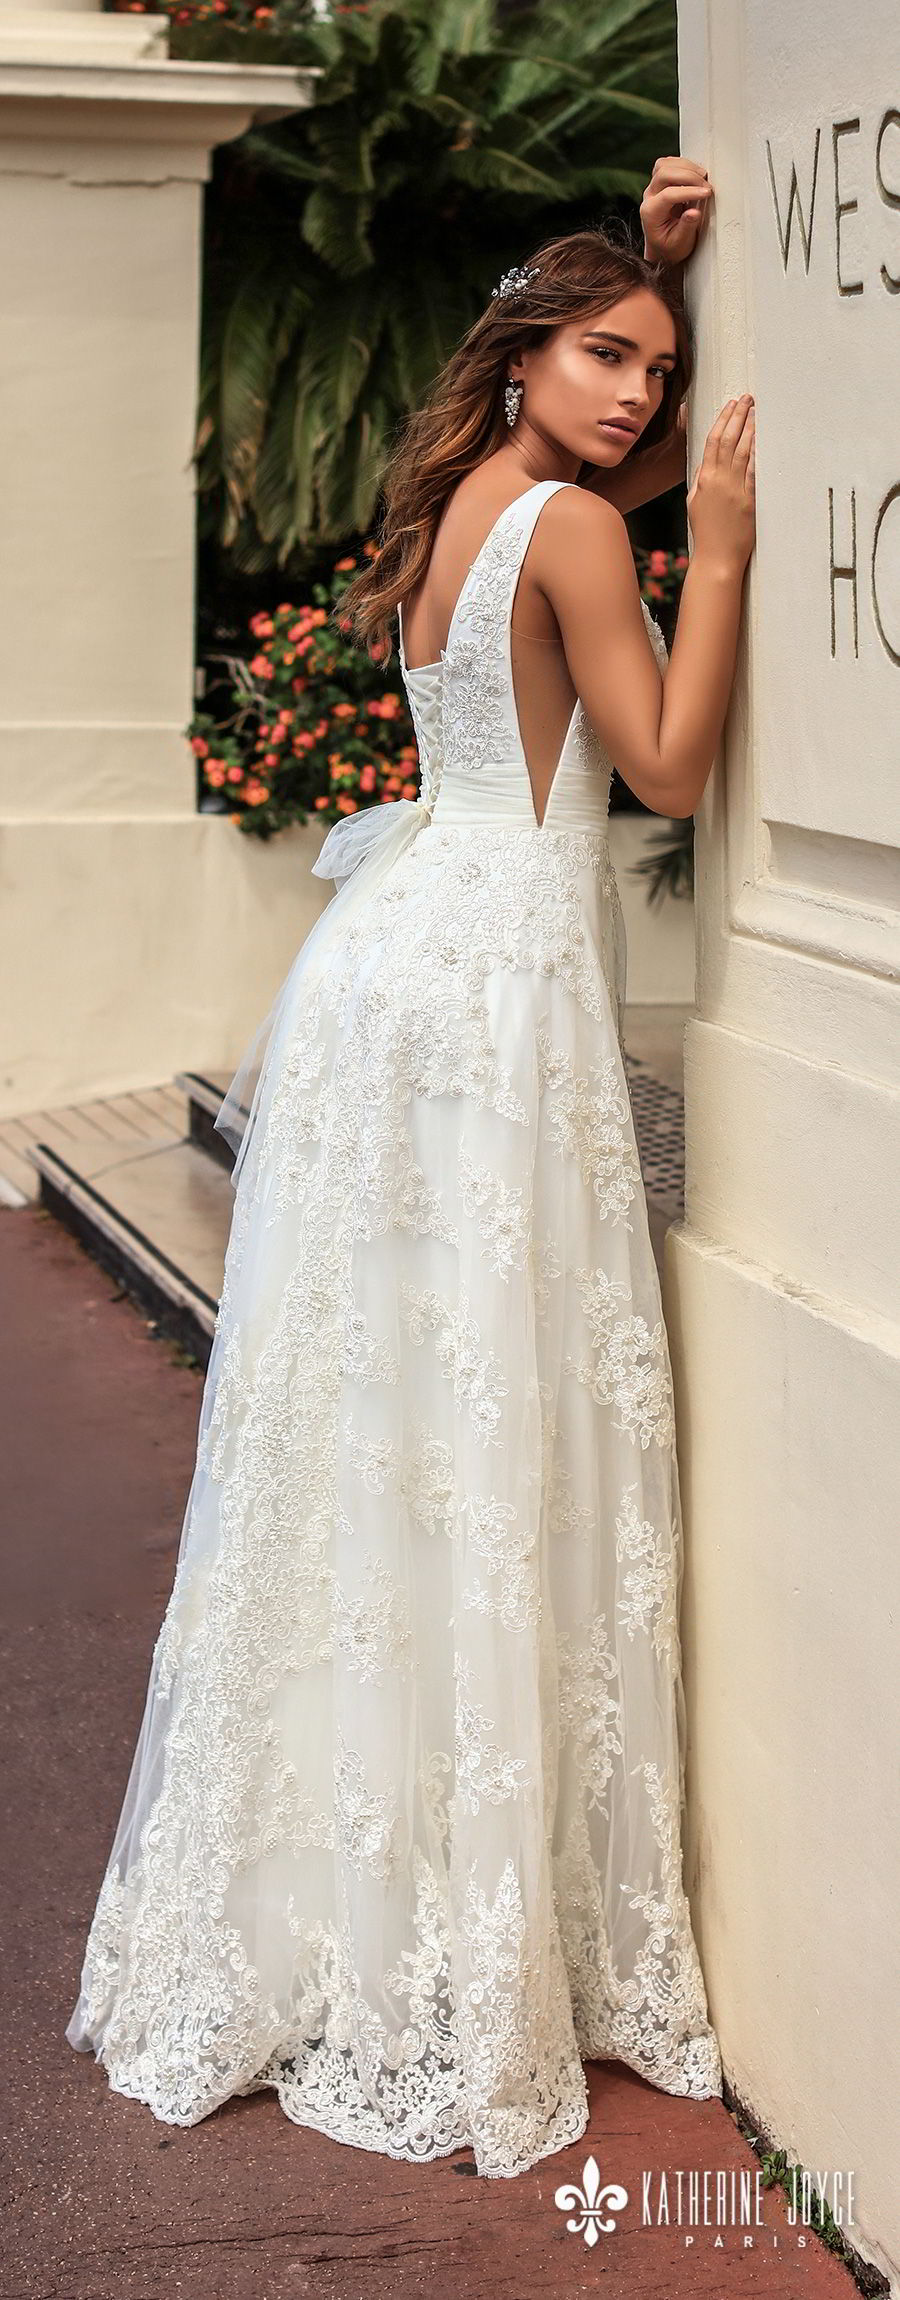 Katherine Joyce 2018 Bridal Sleeveless Deep V Neckline Full Embellishment Side Open A Line Wedding